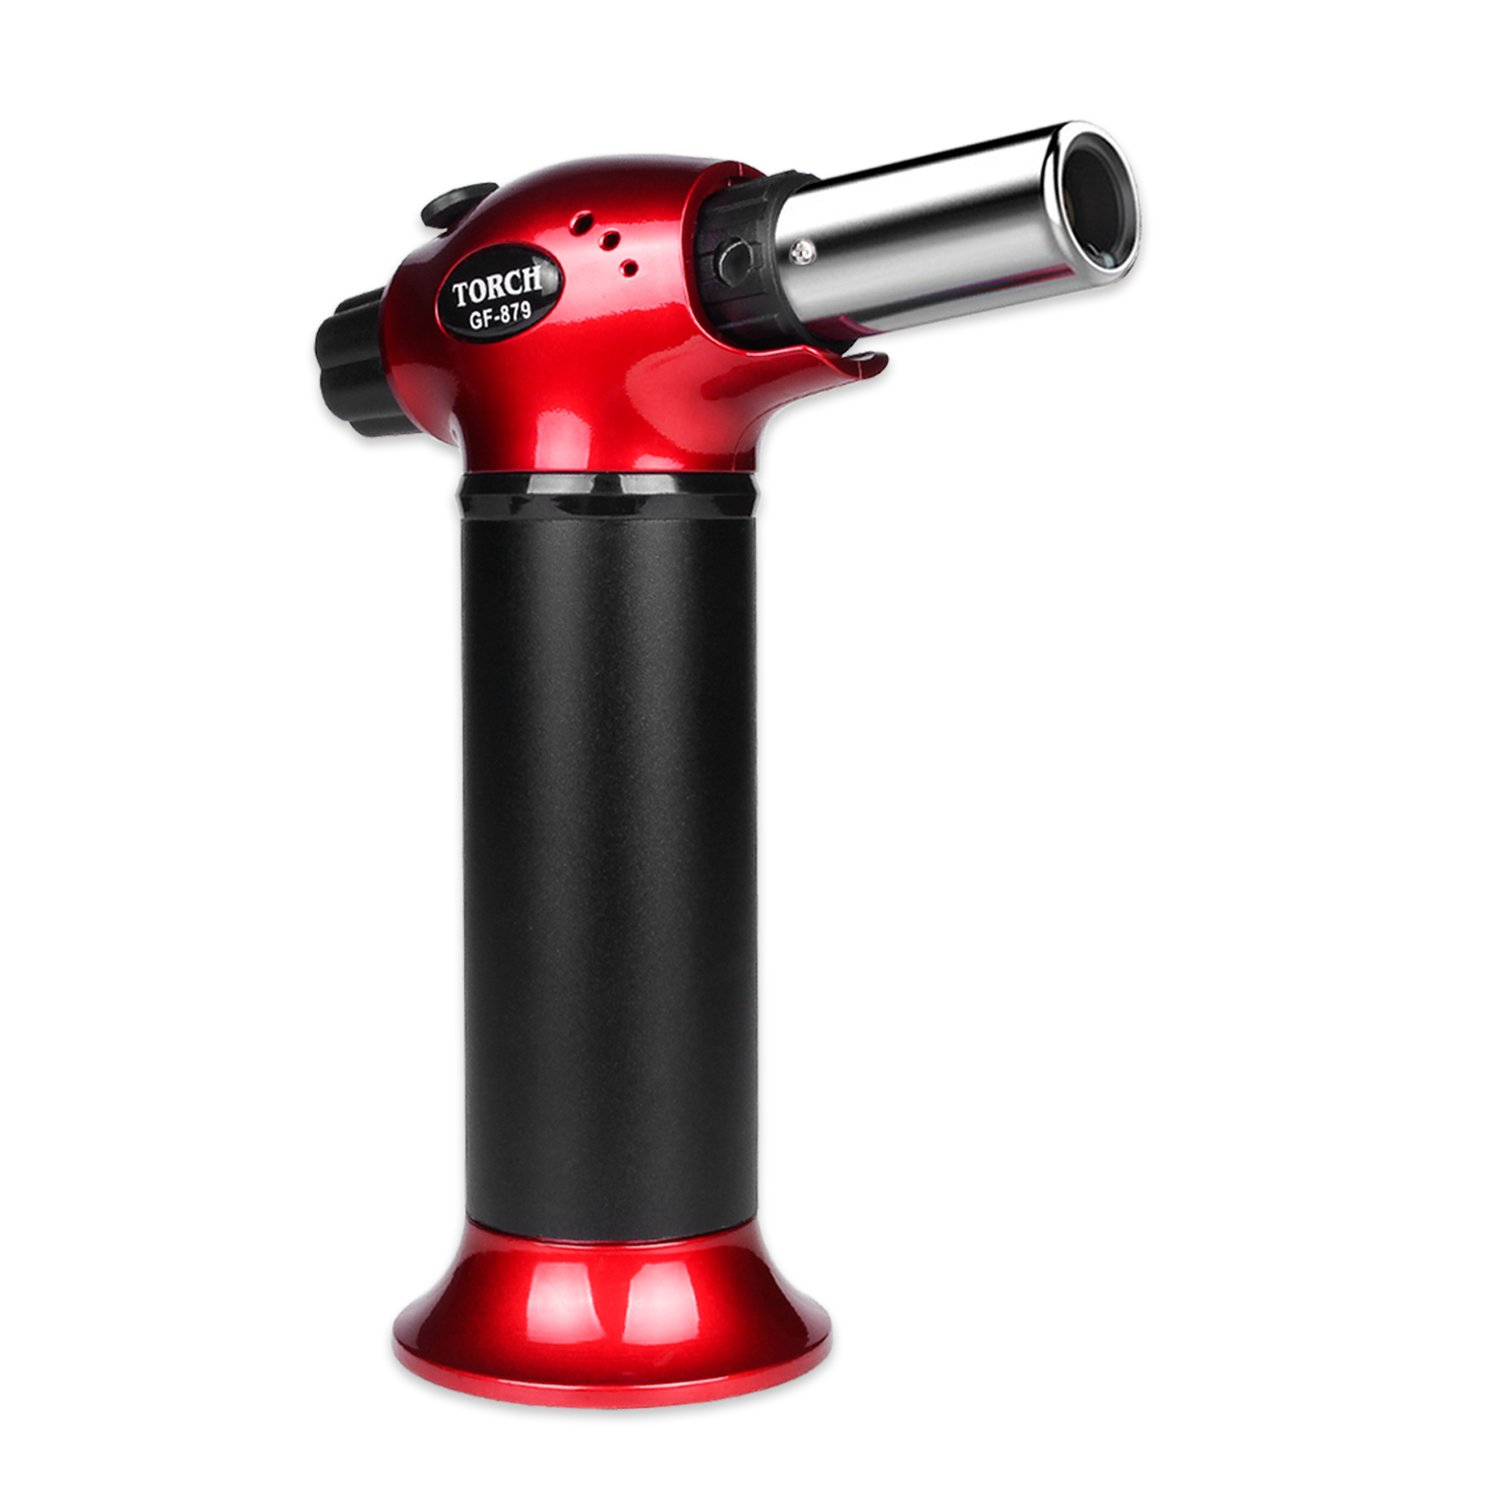 Blow Torch, Refillable Cooking Kitchen Butane Torch Lighter With Safety Lock & Adjustable Flame Perfect for Pastries, Desserts, Brazing, Soldering, Welding, Melting, Heating, Peeling & More by Semdisan (Image #1)